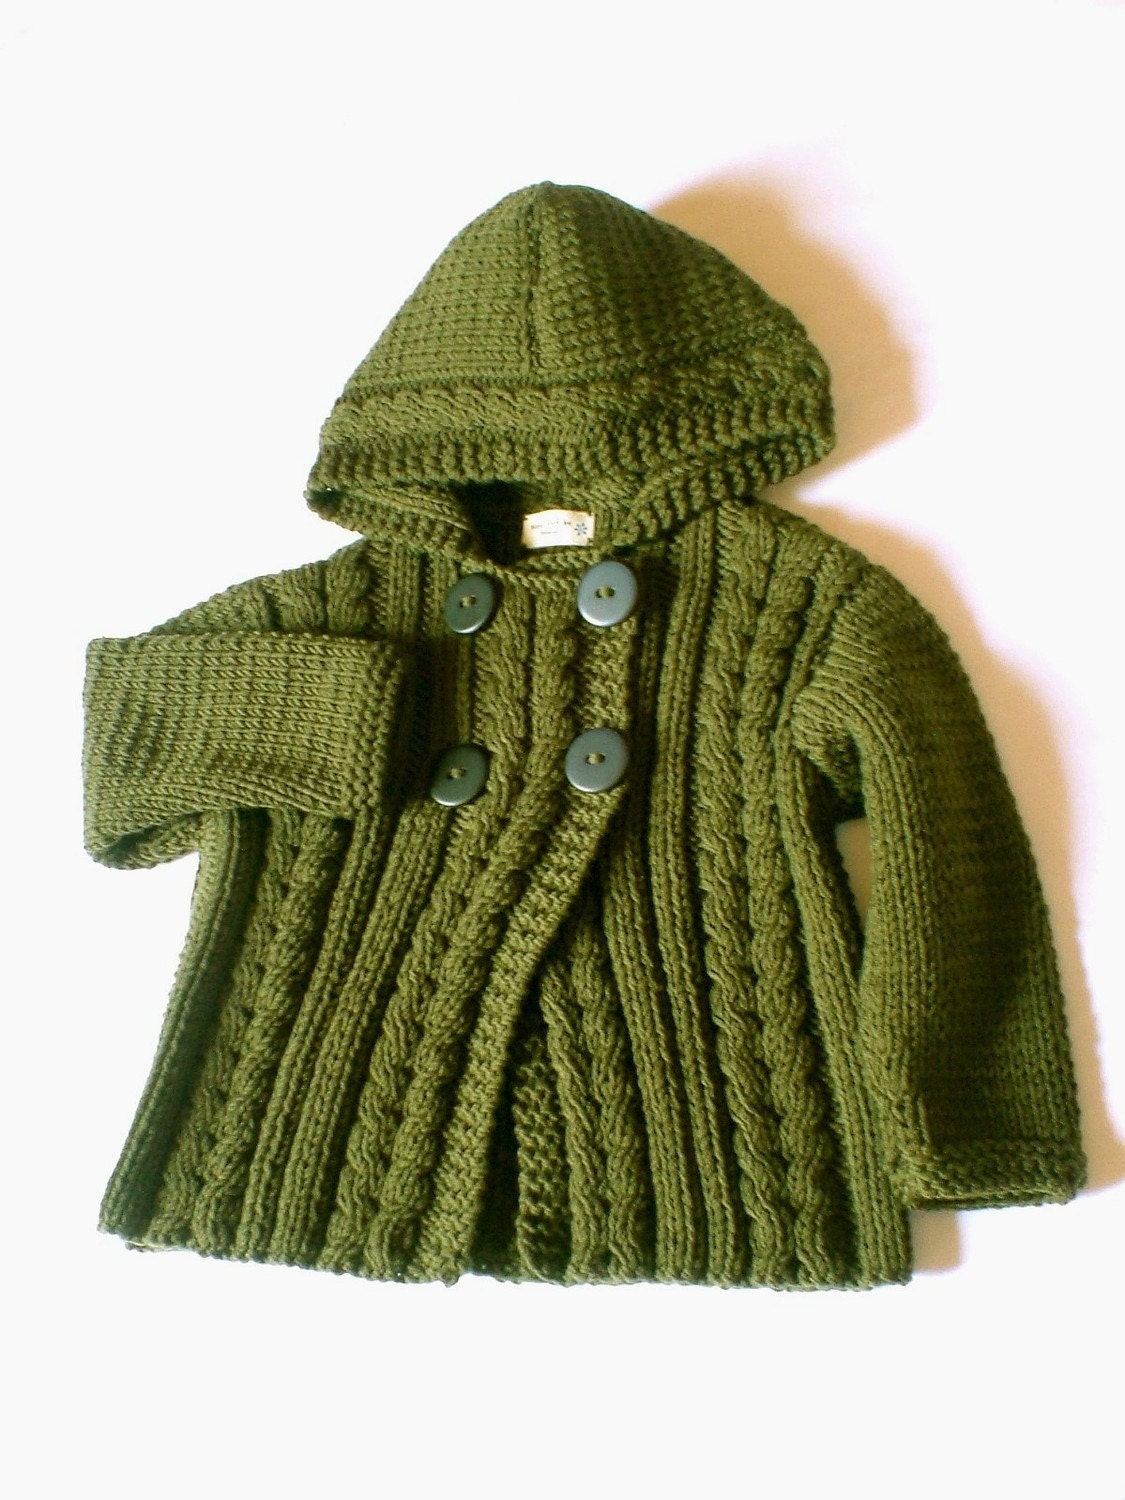 Hand Knit Wool Hooded Jacket Cardigan for Boy or Girl in